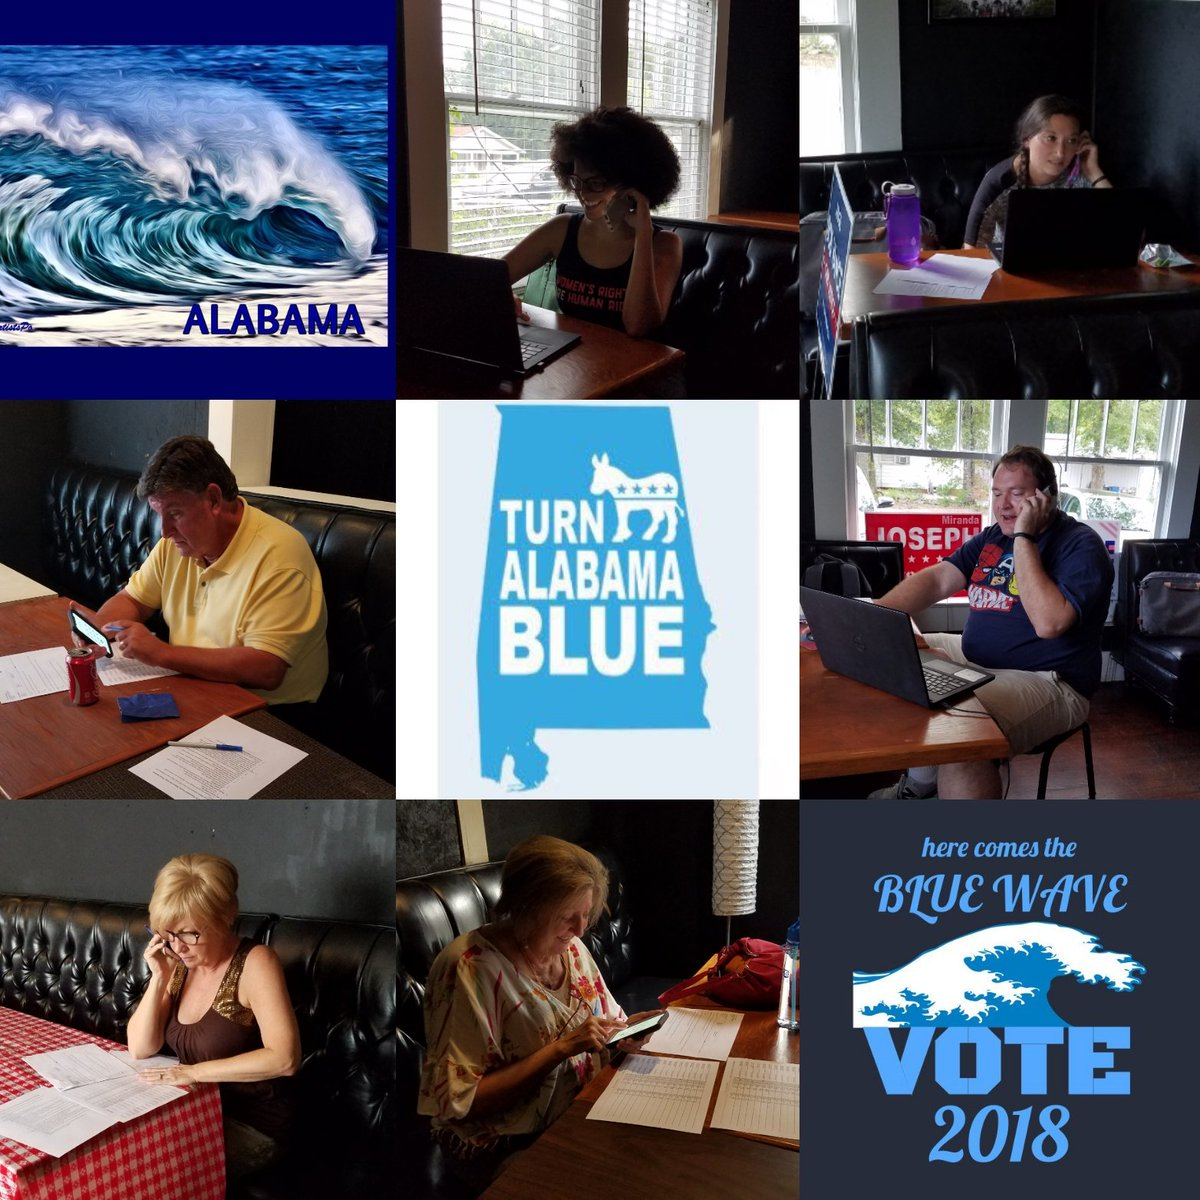 An extremely successful night of introducing friendly #ALDems to our candidates and giving out yard signs.   Join us every Wed and Thurs 5-8 pm, 3510 Loop Rd.  If you can&#39;t call, donate:  http:// store.tuscaloosademocrats.org / &nbsp;    #alpolitics #FlipItBlue #BlueWave2018 #BlueWave <br>http://pic.twitter.com/hlFlyt4JVp